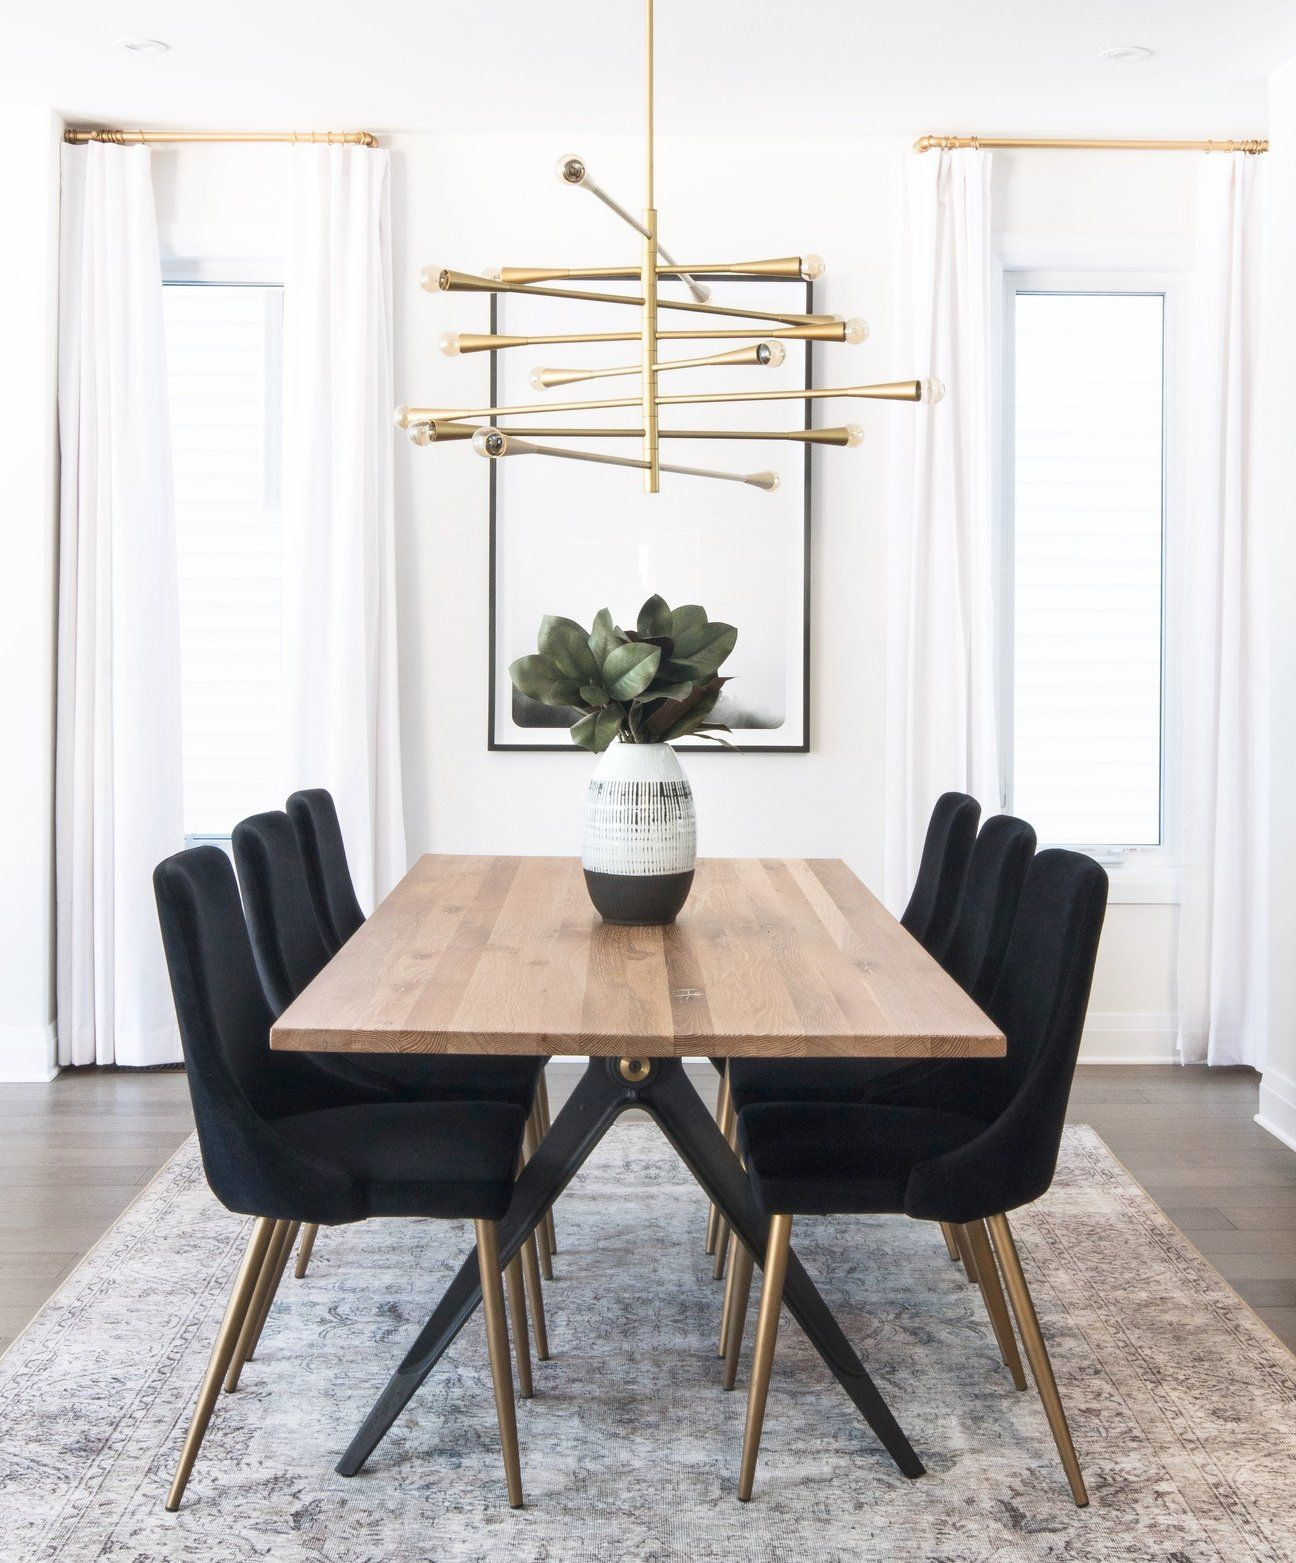 Compass Dining Table images